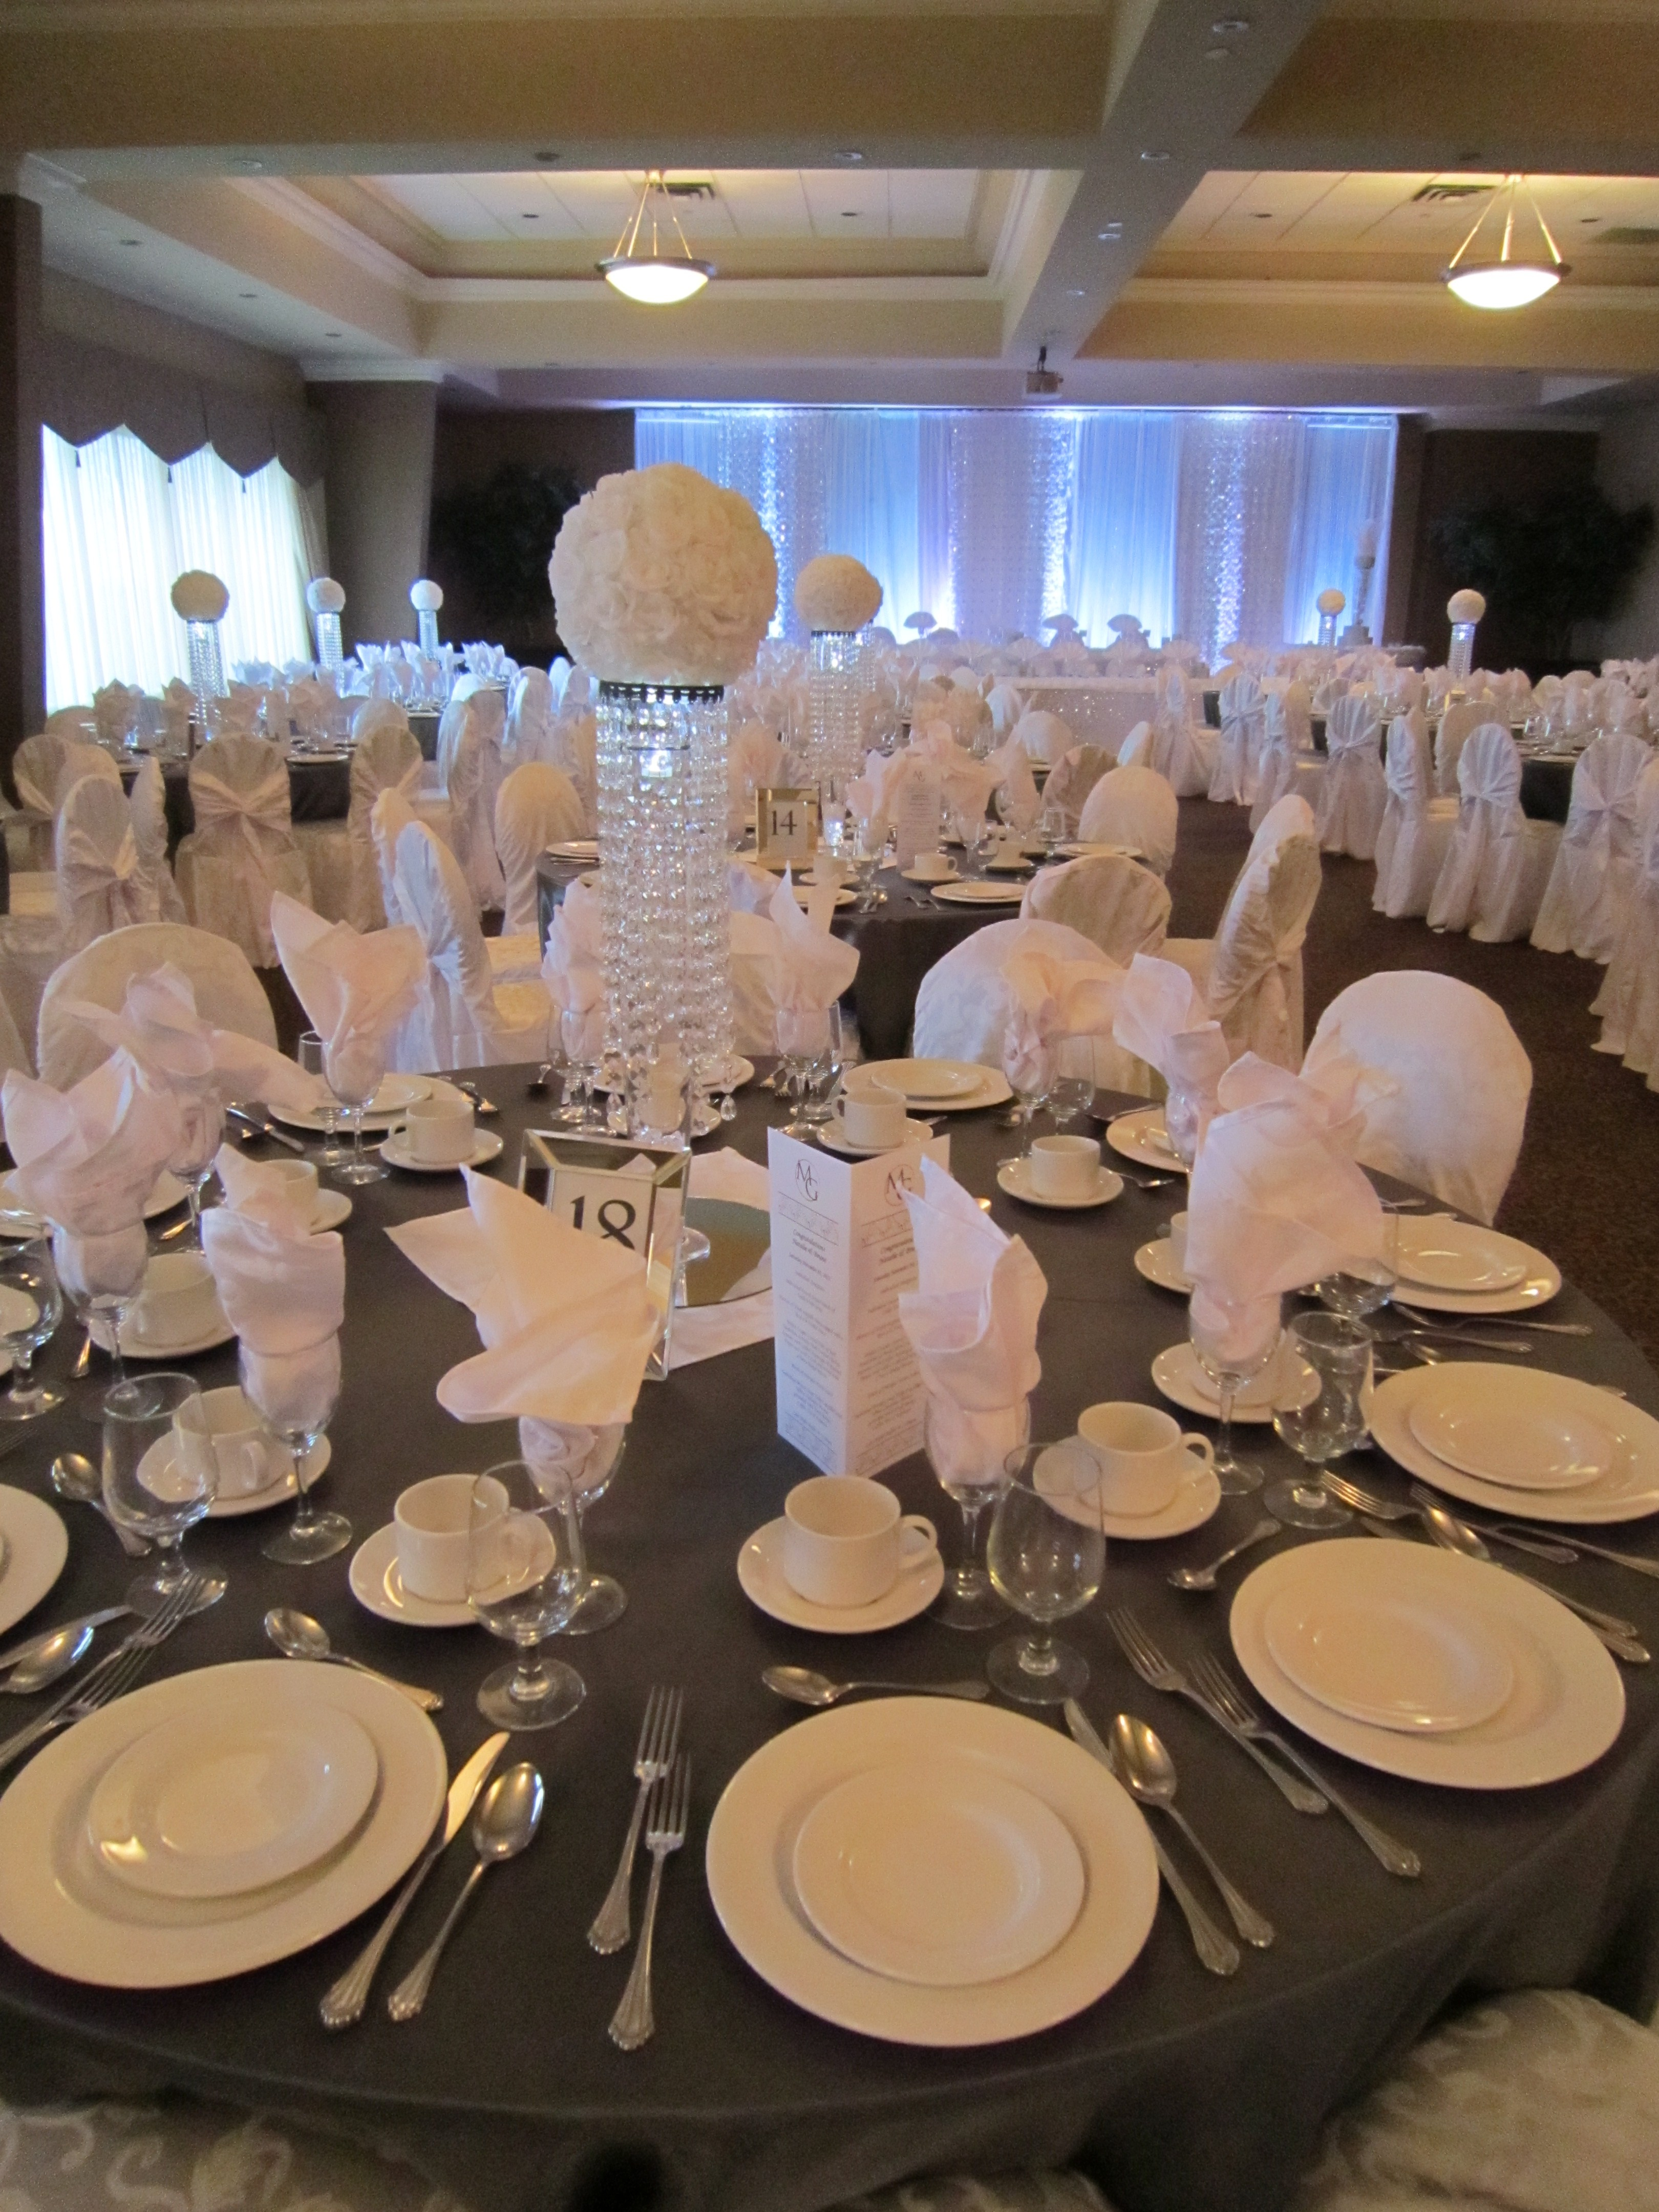 Awesome Flower Balls For Wedding Centerpieces Gallery - Styles ...